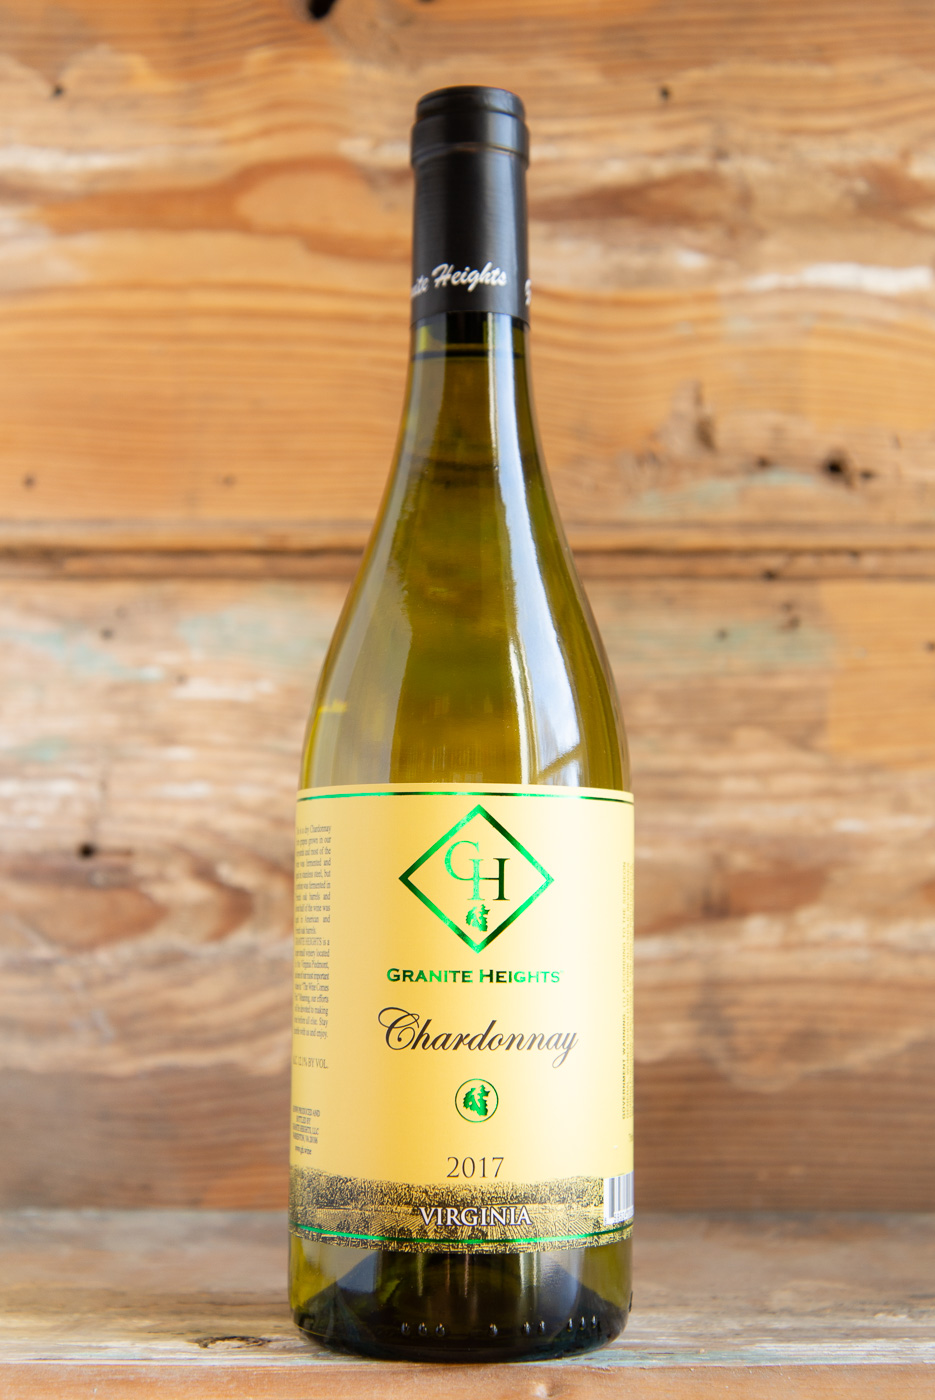 Granite Heights Chardonnay 2017 - Origin: VirginiaRetail: $19.95 | Sale $17.95Granite Heights is a small, boutique winery run by husband and wife team, Luke and Toni Kilyk in Warrenton, VA. Luke and Toni do all of the vineyard work themselves, on top of both working full-time jobs. It takes endless passion, drive, and commitment to pull that off and make the quality of wines that they are producing. This estate-grown Chardonnay has just the right amount of oak influence. The result is a pleasing combination of ripe pear and apple, notes of clove and lemon zest with fresh acidity.100% Chardonnay